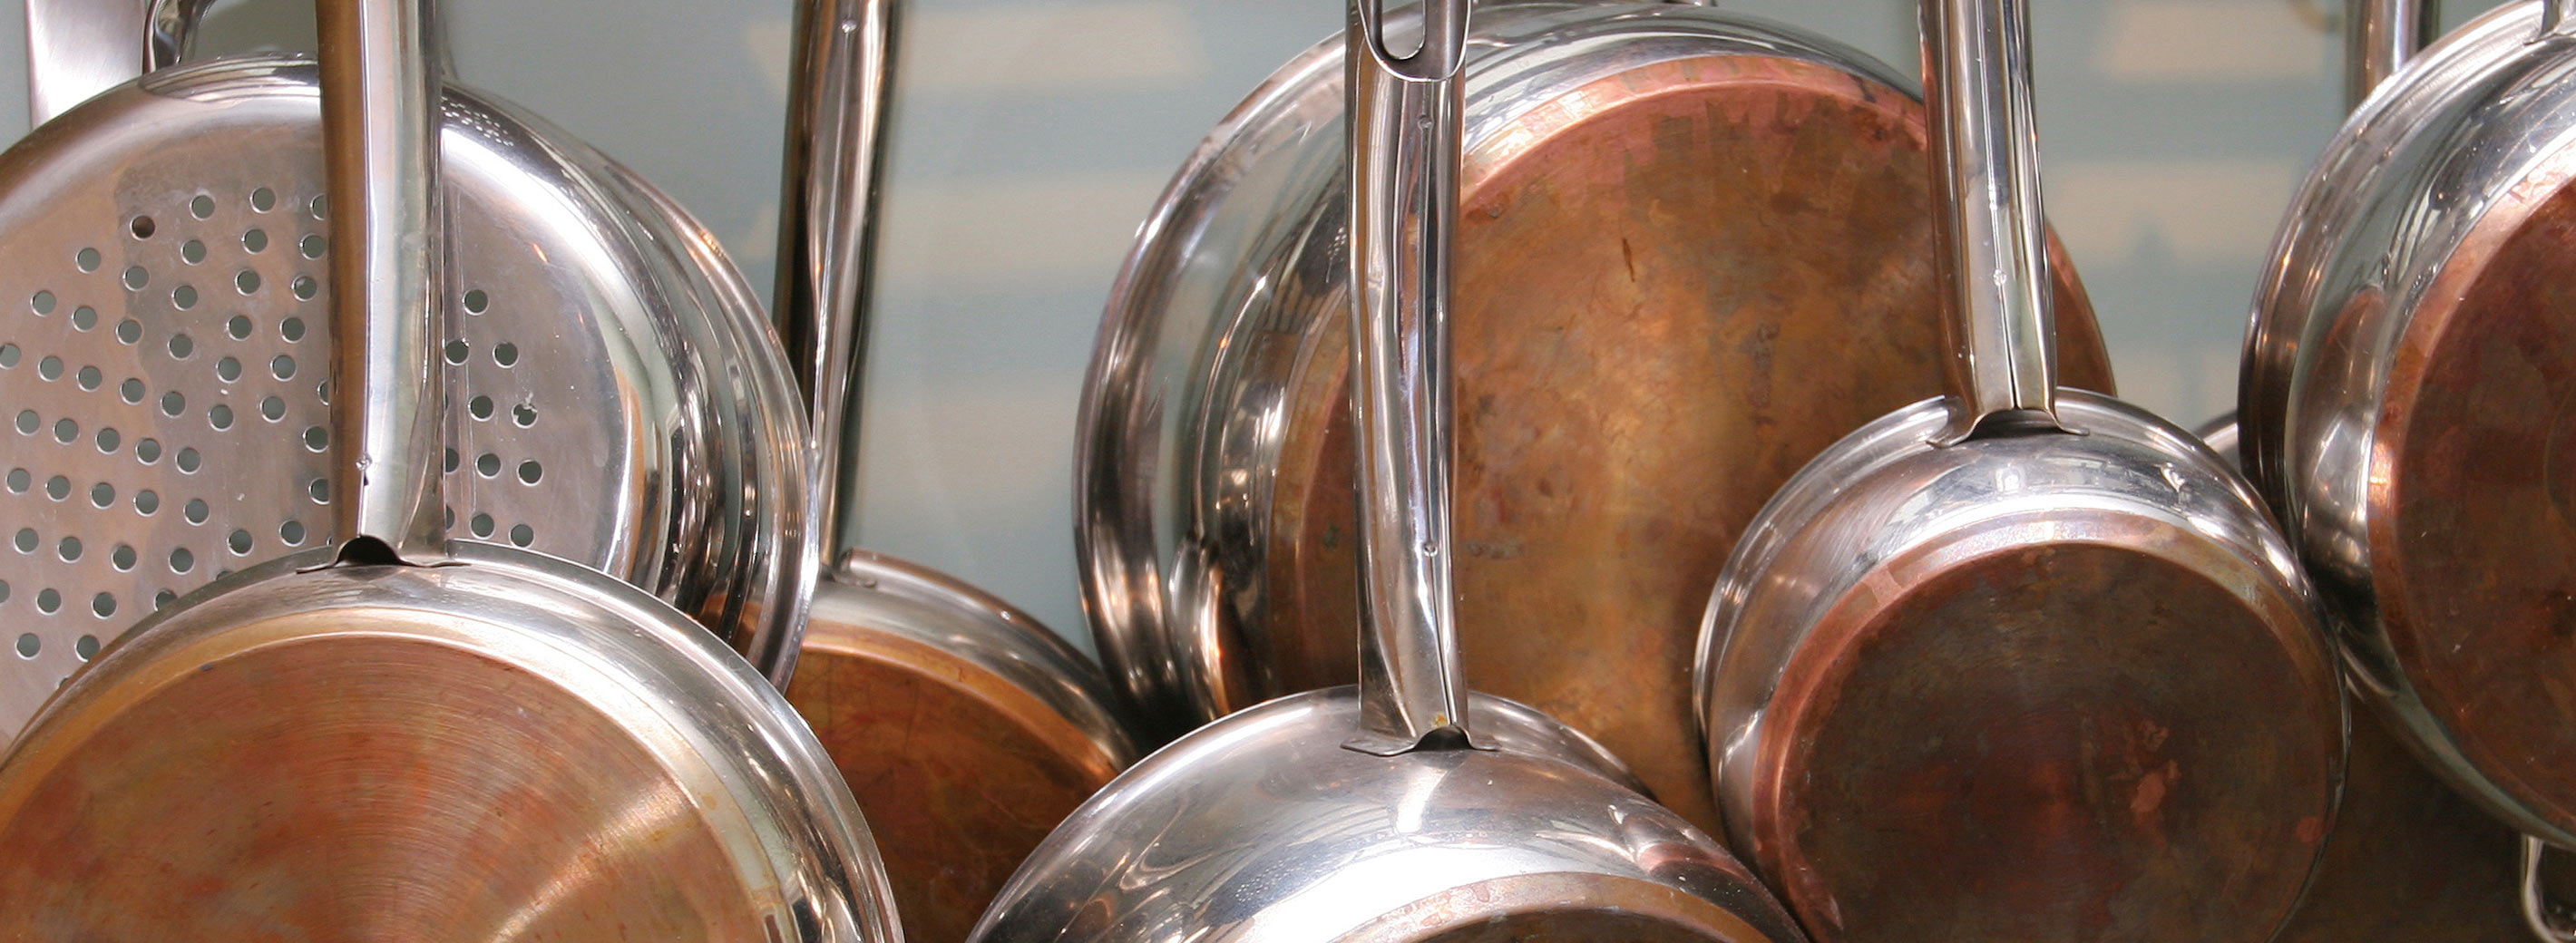 Copper pots and pans hanging